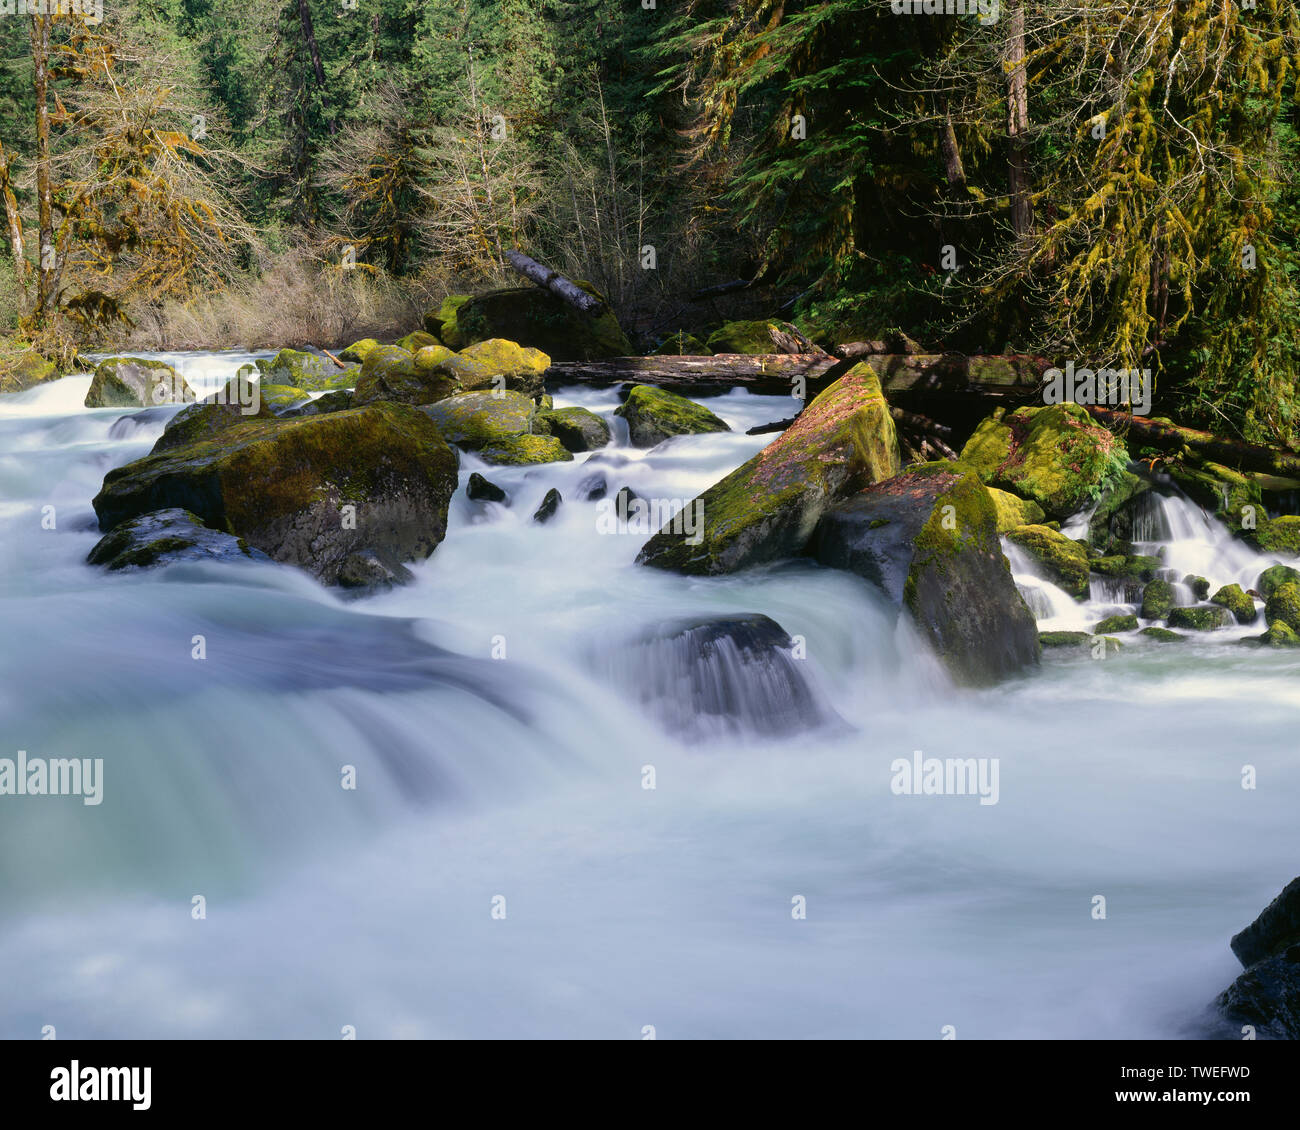 USA, Washington, Olympic National Park, North Fork Skokomish River swollen from spring runoff with maples and conifers lining the riverbank. - Stock Image